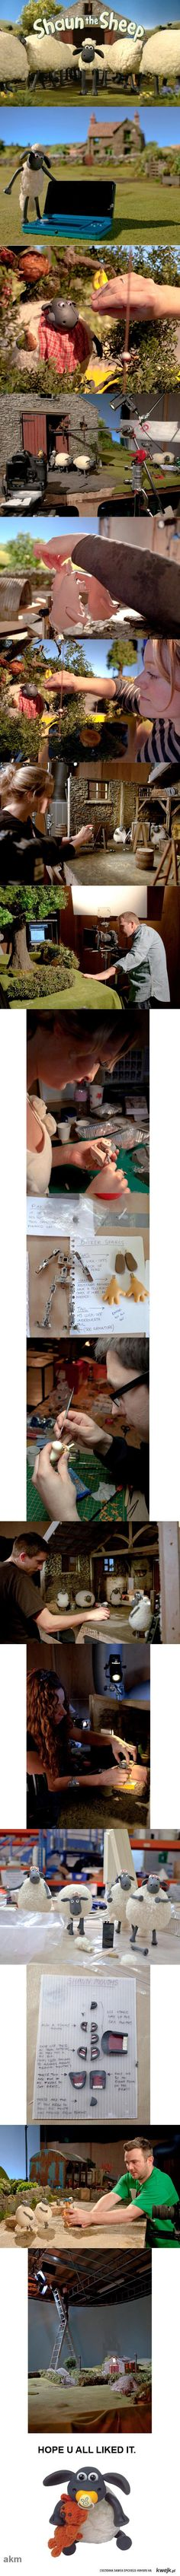 stop motion. Shawn the Sheep. ~Gramma loved Shawn the Sheep and Aardman Studio as much as you love Coraline, ParaNorman, and LAIKA. Clay Animation, Animation Stop Motion, Laika Studios, Shaun The Sheep, Marionette, 3d Max, Film Serie, Art Plastique, Sketches